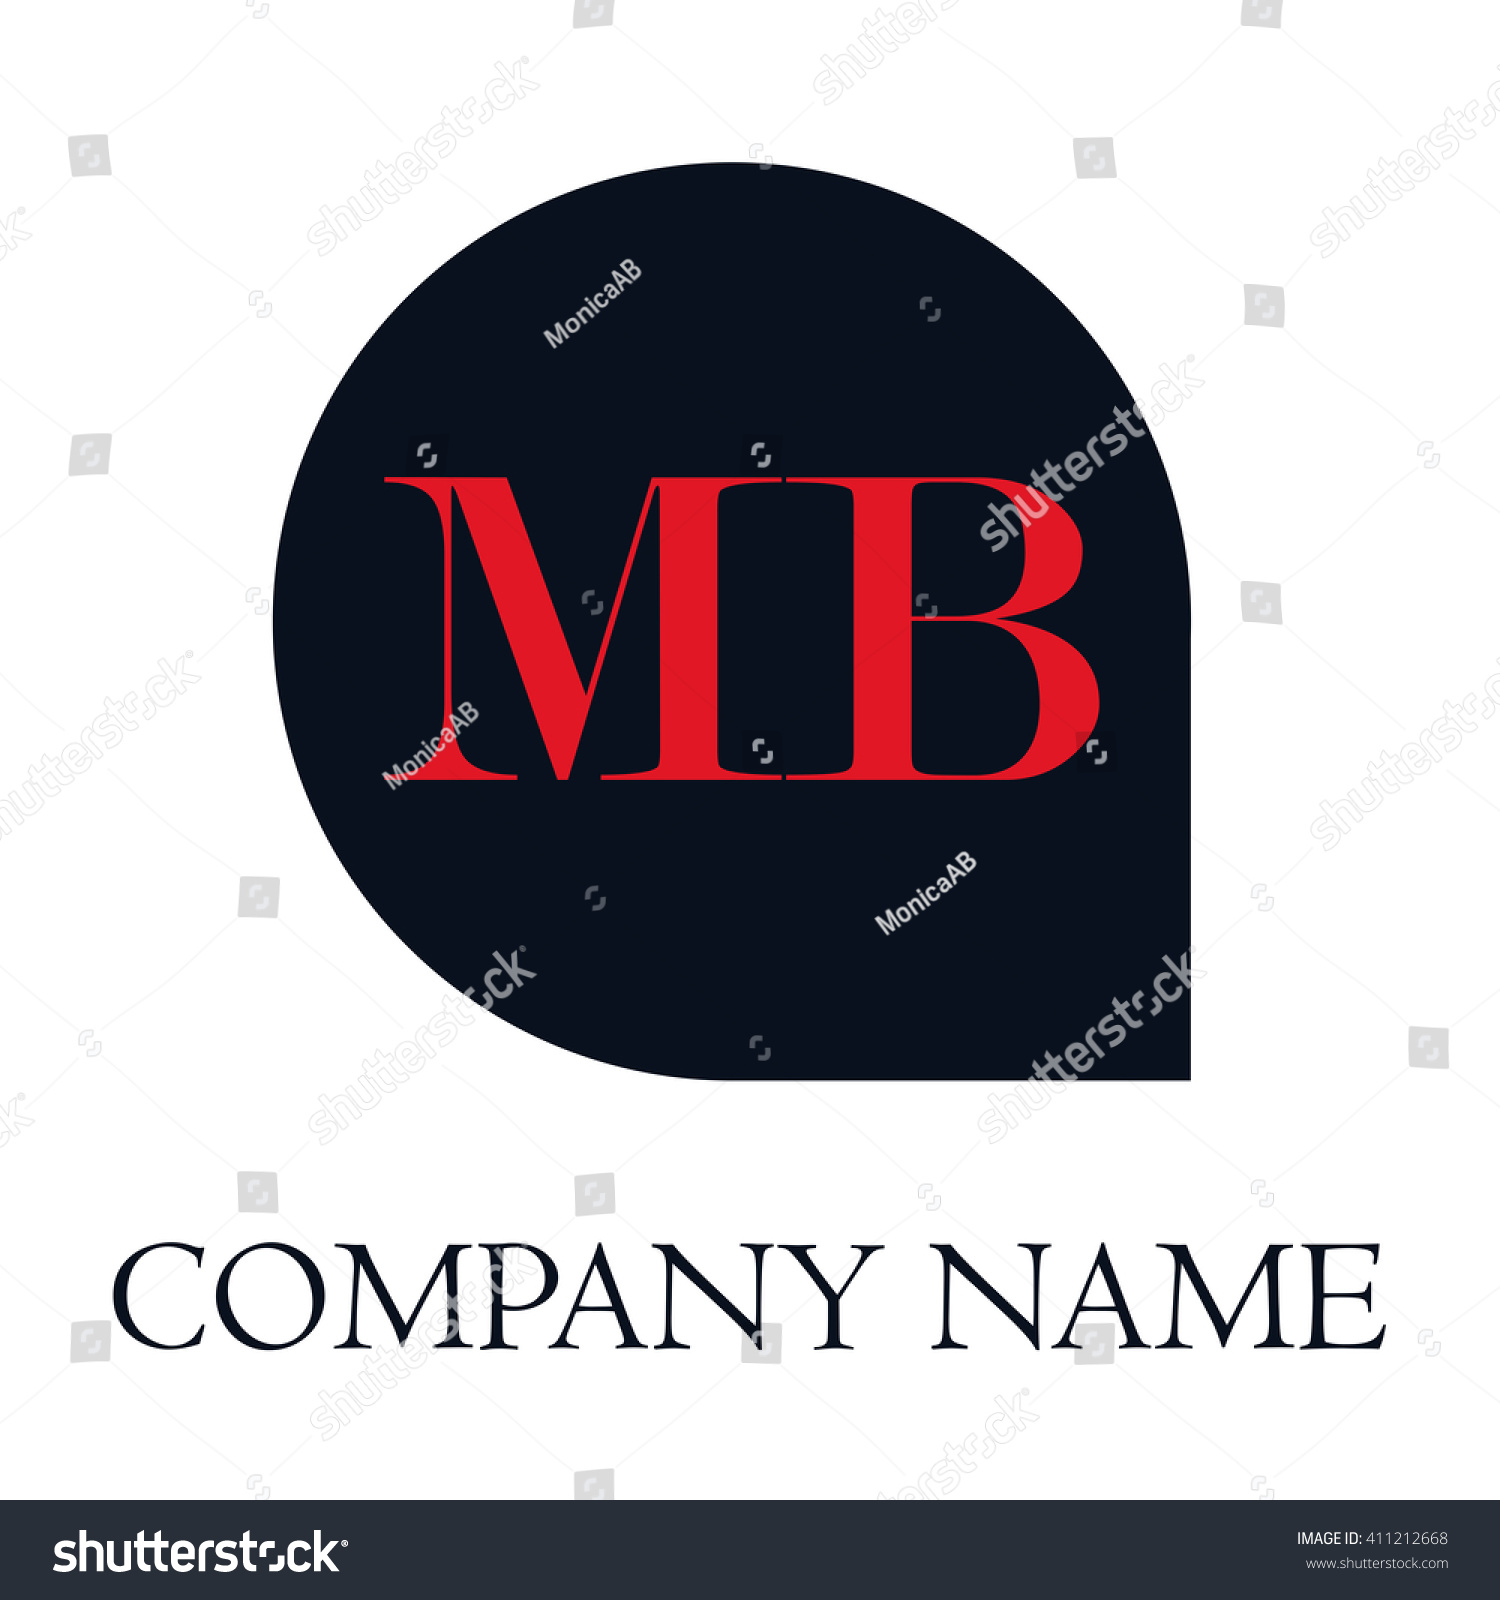 Mb Stock Photos, Royalty-Free Images & Vectors - Shutterstock